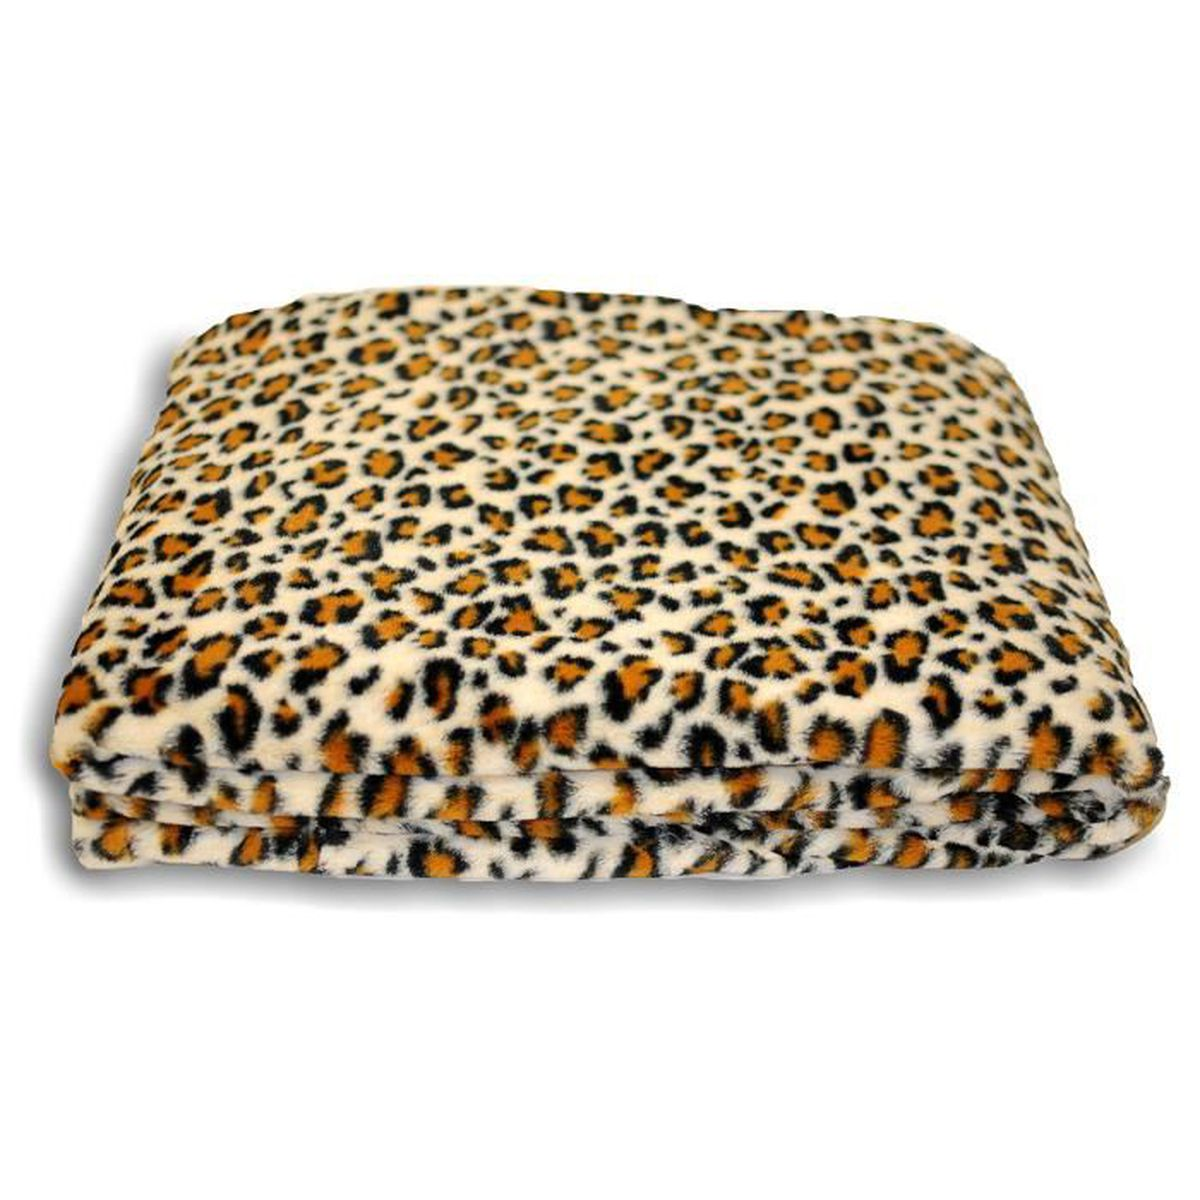 couverture leopard achat vente couverture leopard pas cher cdiscount. Black Bedroom Furniture Sets. Home Design Ideas